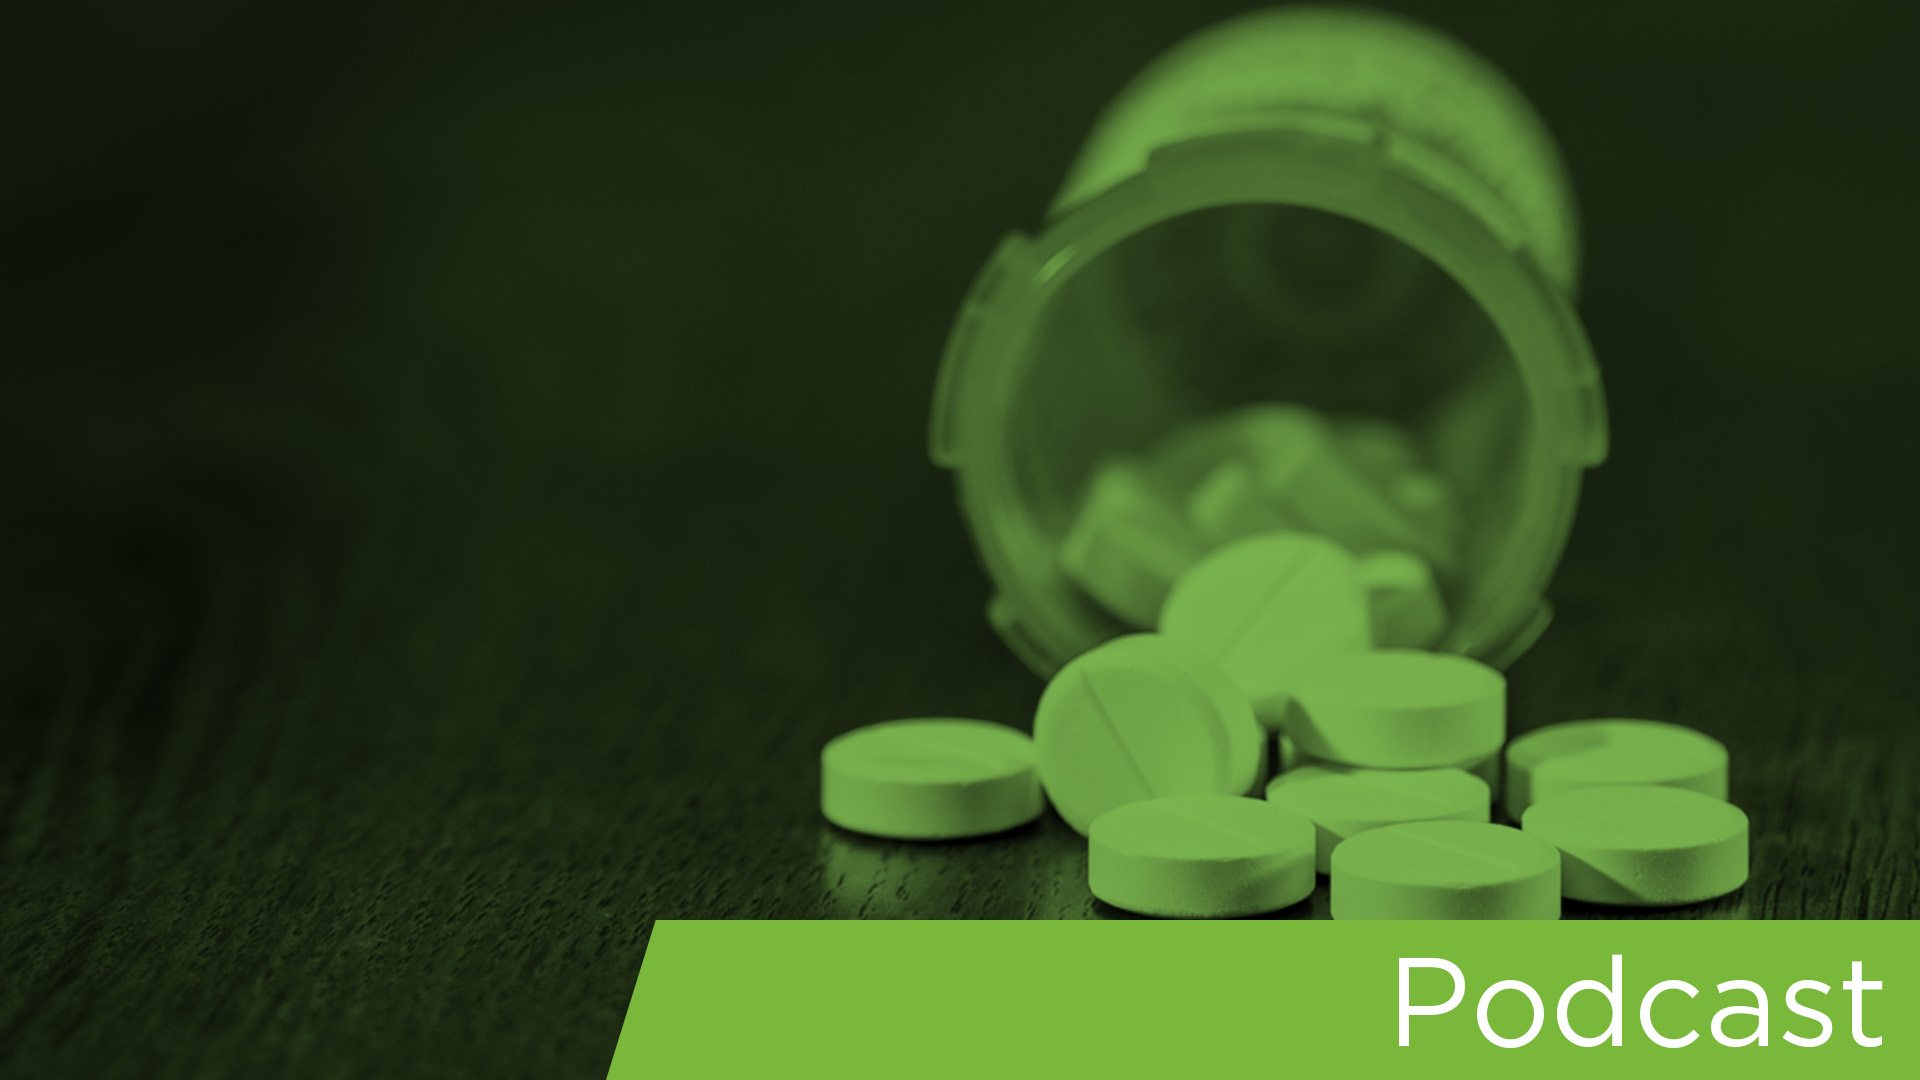 Podcast 140 image_Can federal laws tackle the opioid crisis_green overlay